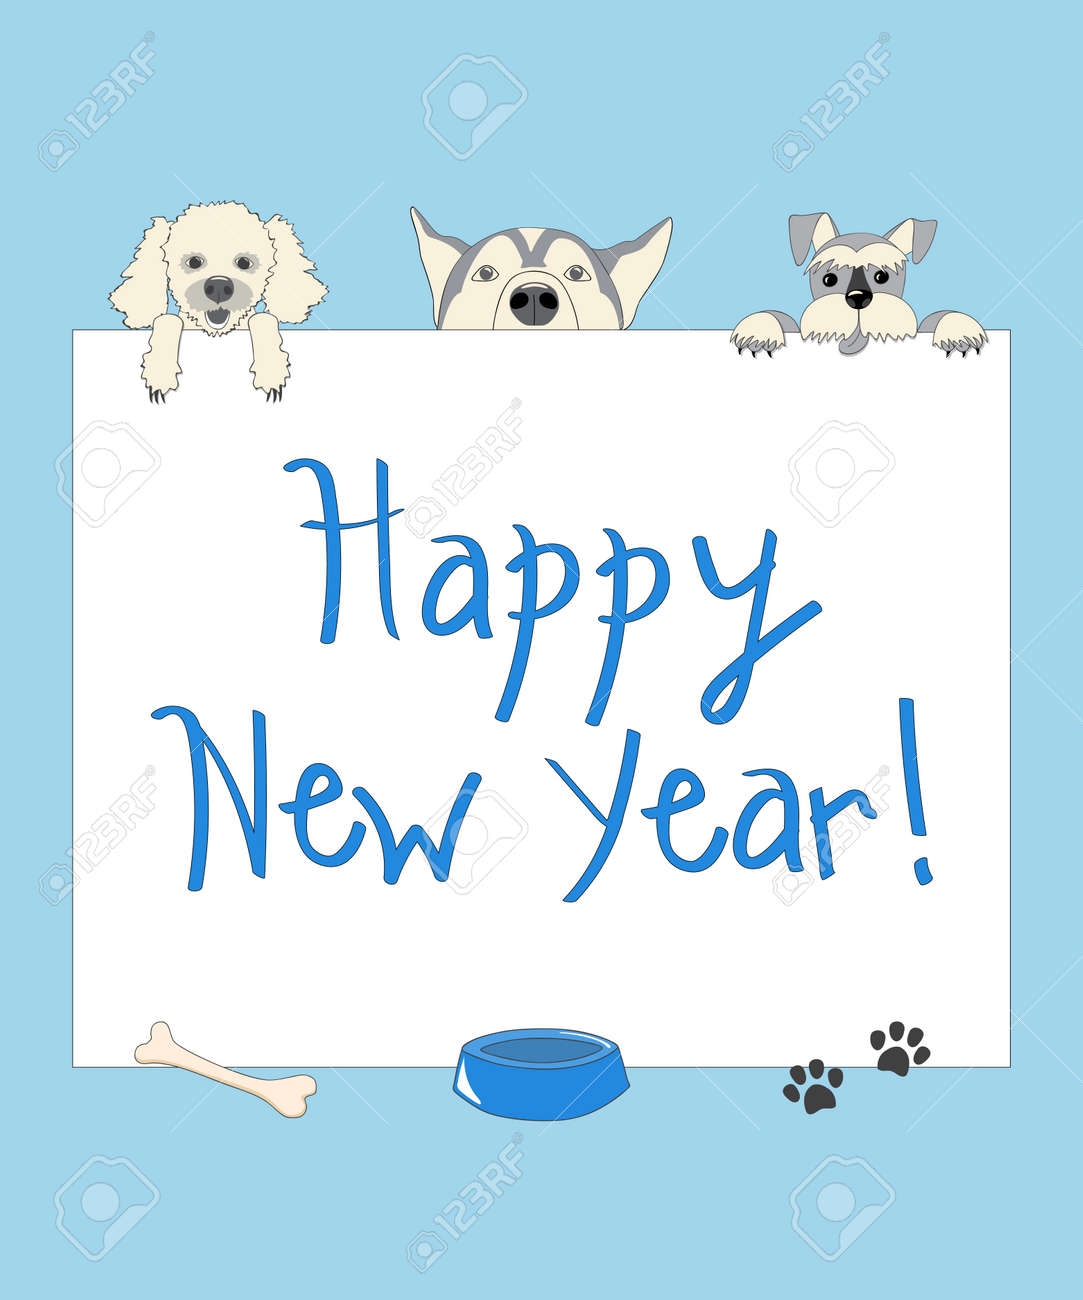 Kids New Year Card With Funny Cartoon Dogs And Text Happy New ...